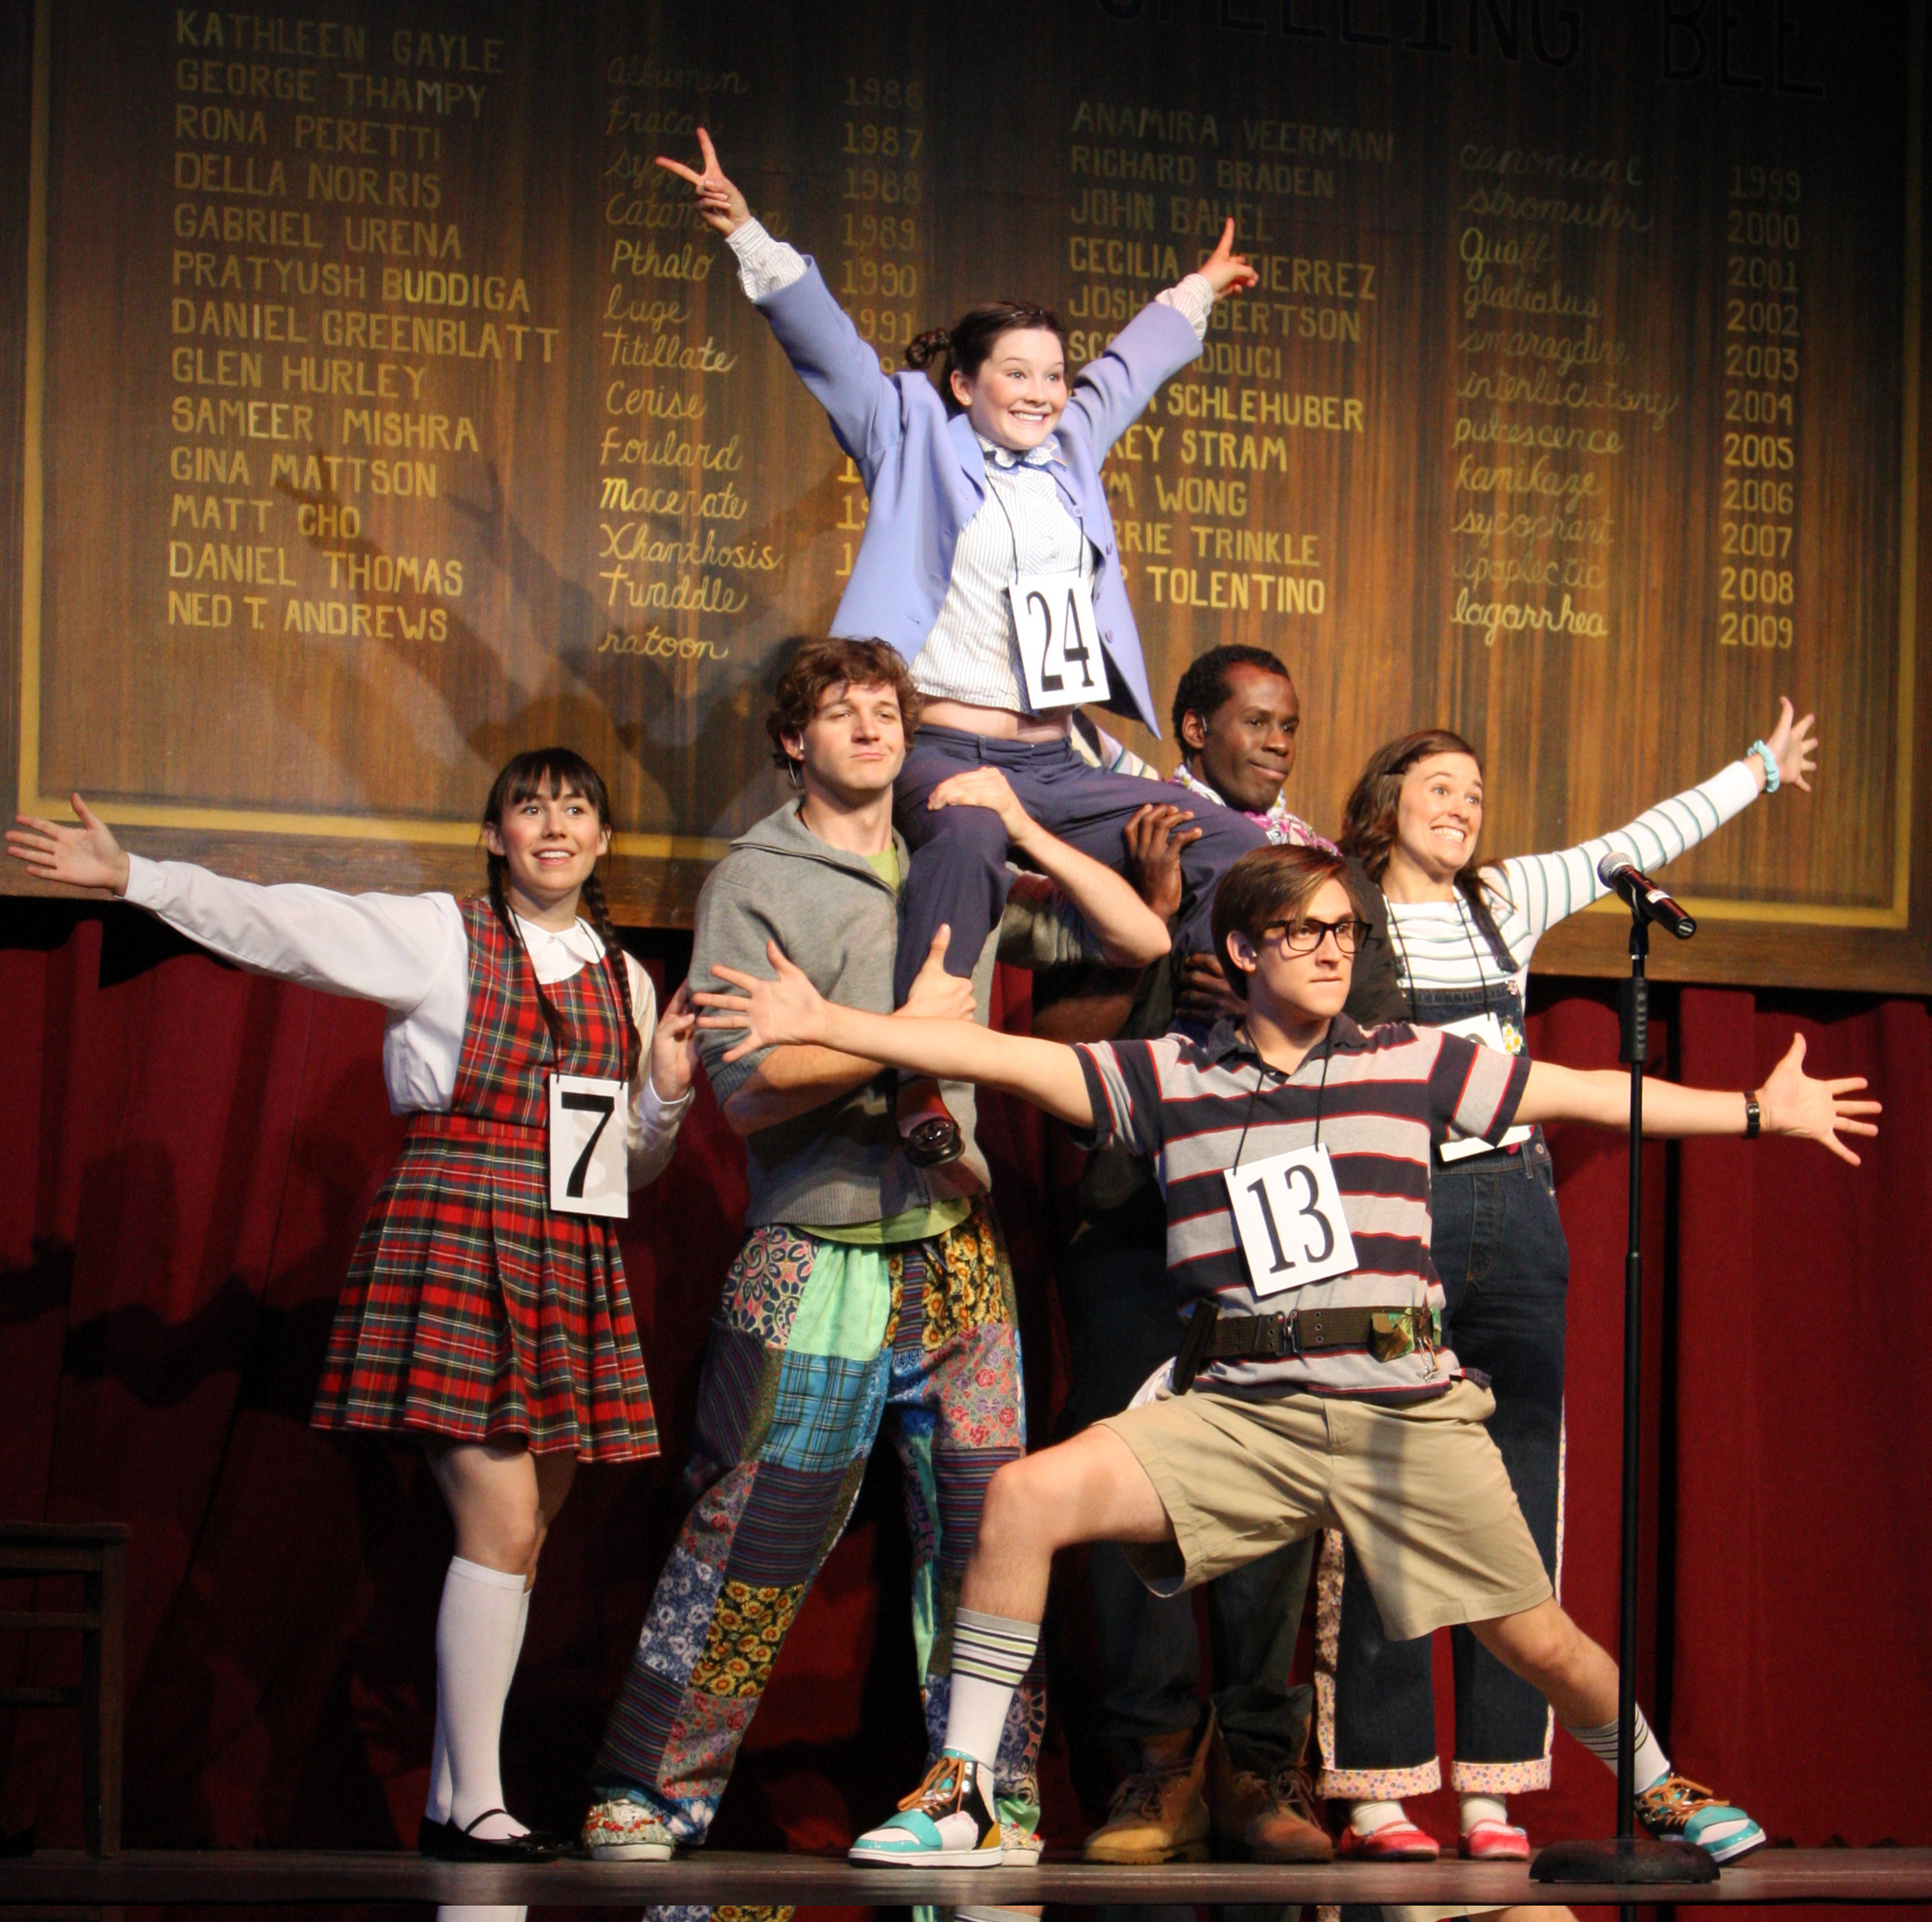 25th Annual...Spelling Bee - Summer Repertory Theatre (top) © Summer Repertory Theatre